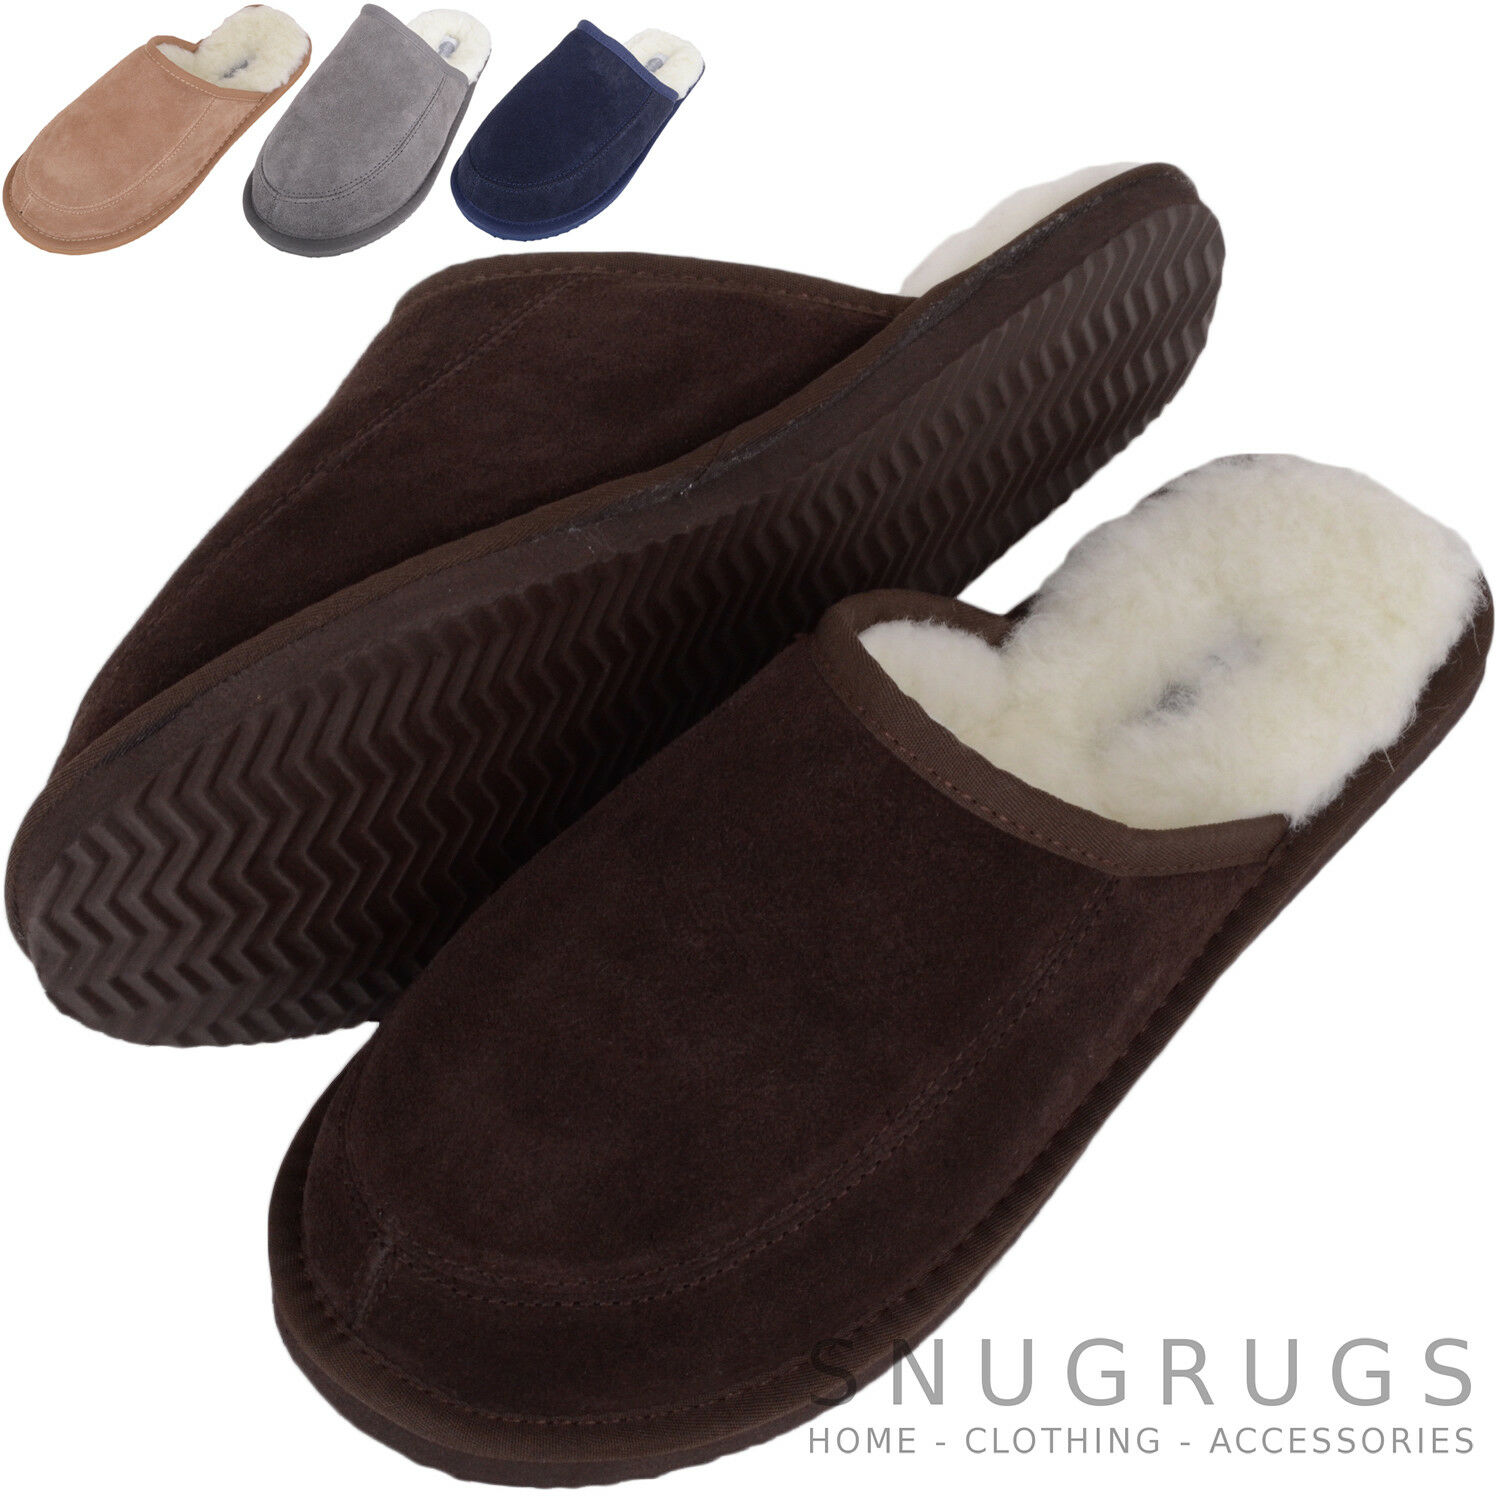 Indoor Shoes Gents Wool Lined SNUGRUGS Mens Sheepskin Slippers